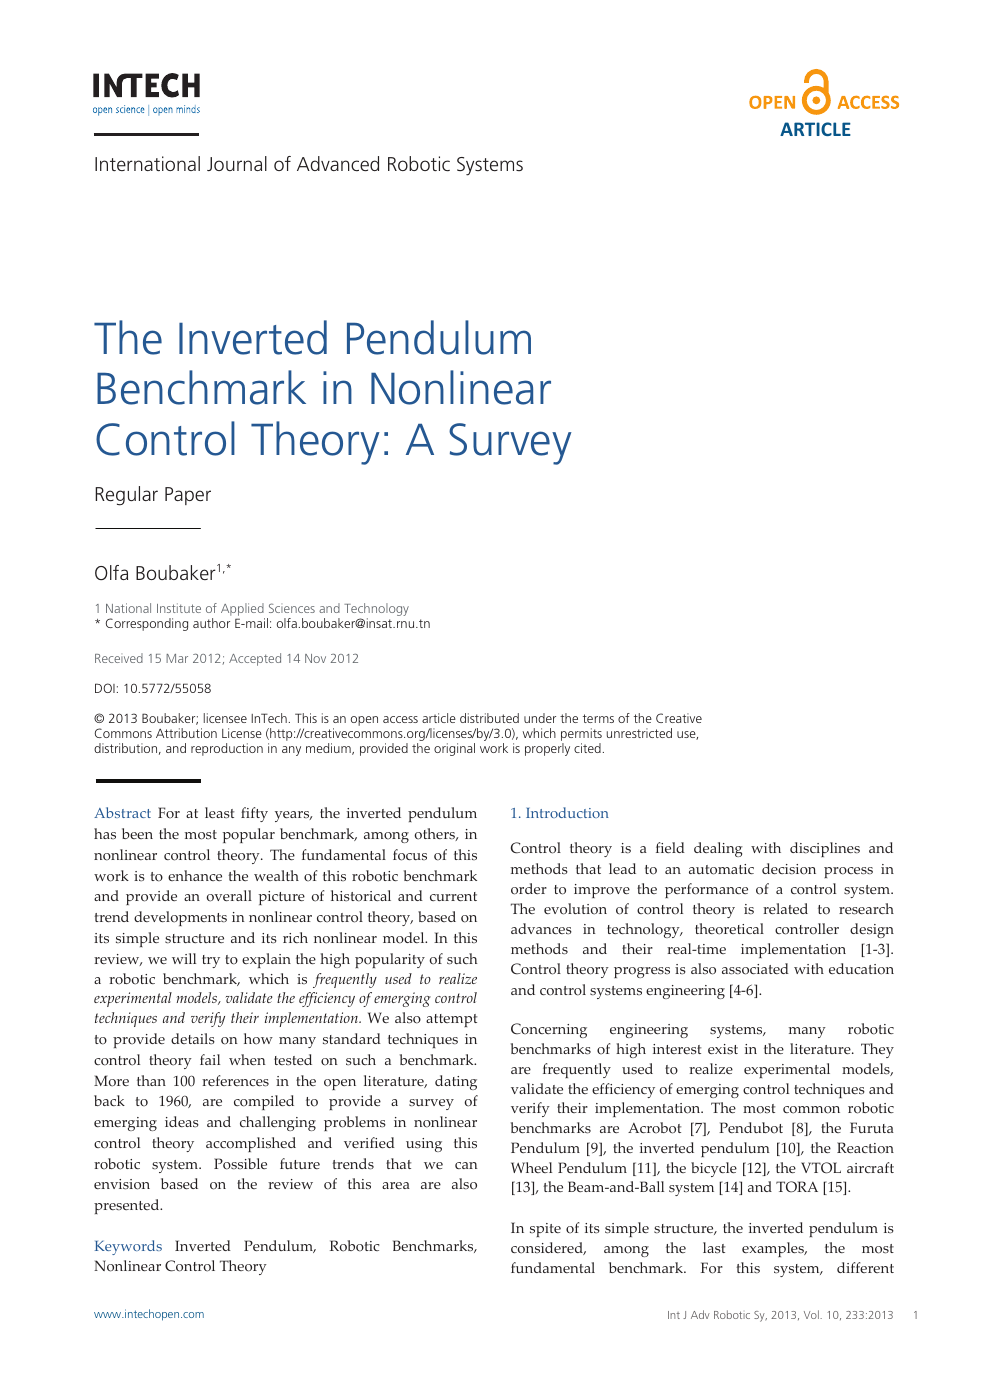 The Inverted Pendulum Benchmark In Nonlinear Control Theory A Survey Topic Of Research Paper In Mathematics Download Scholarly Article Pdf And Read For Free On Cyberleninka Open Science Hub